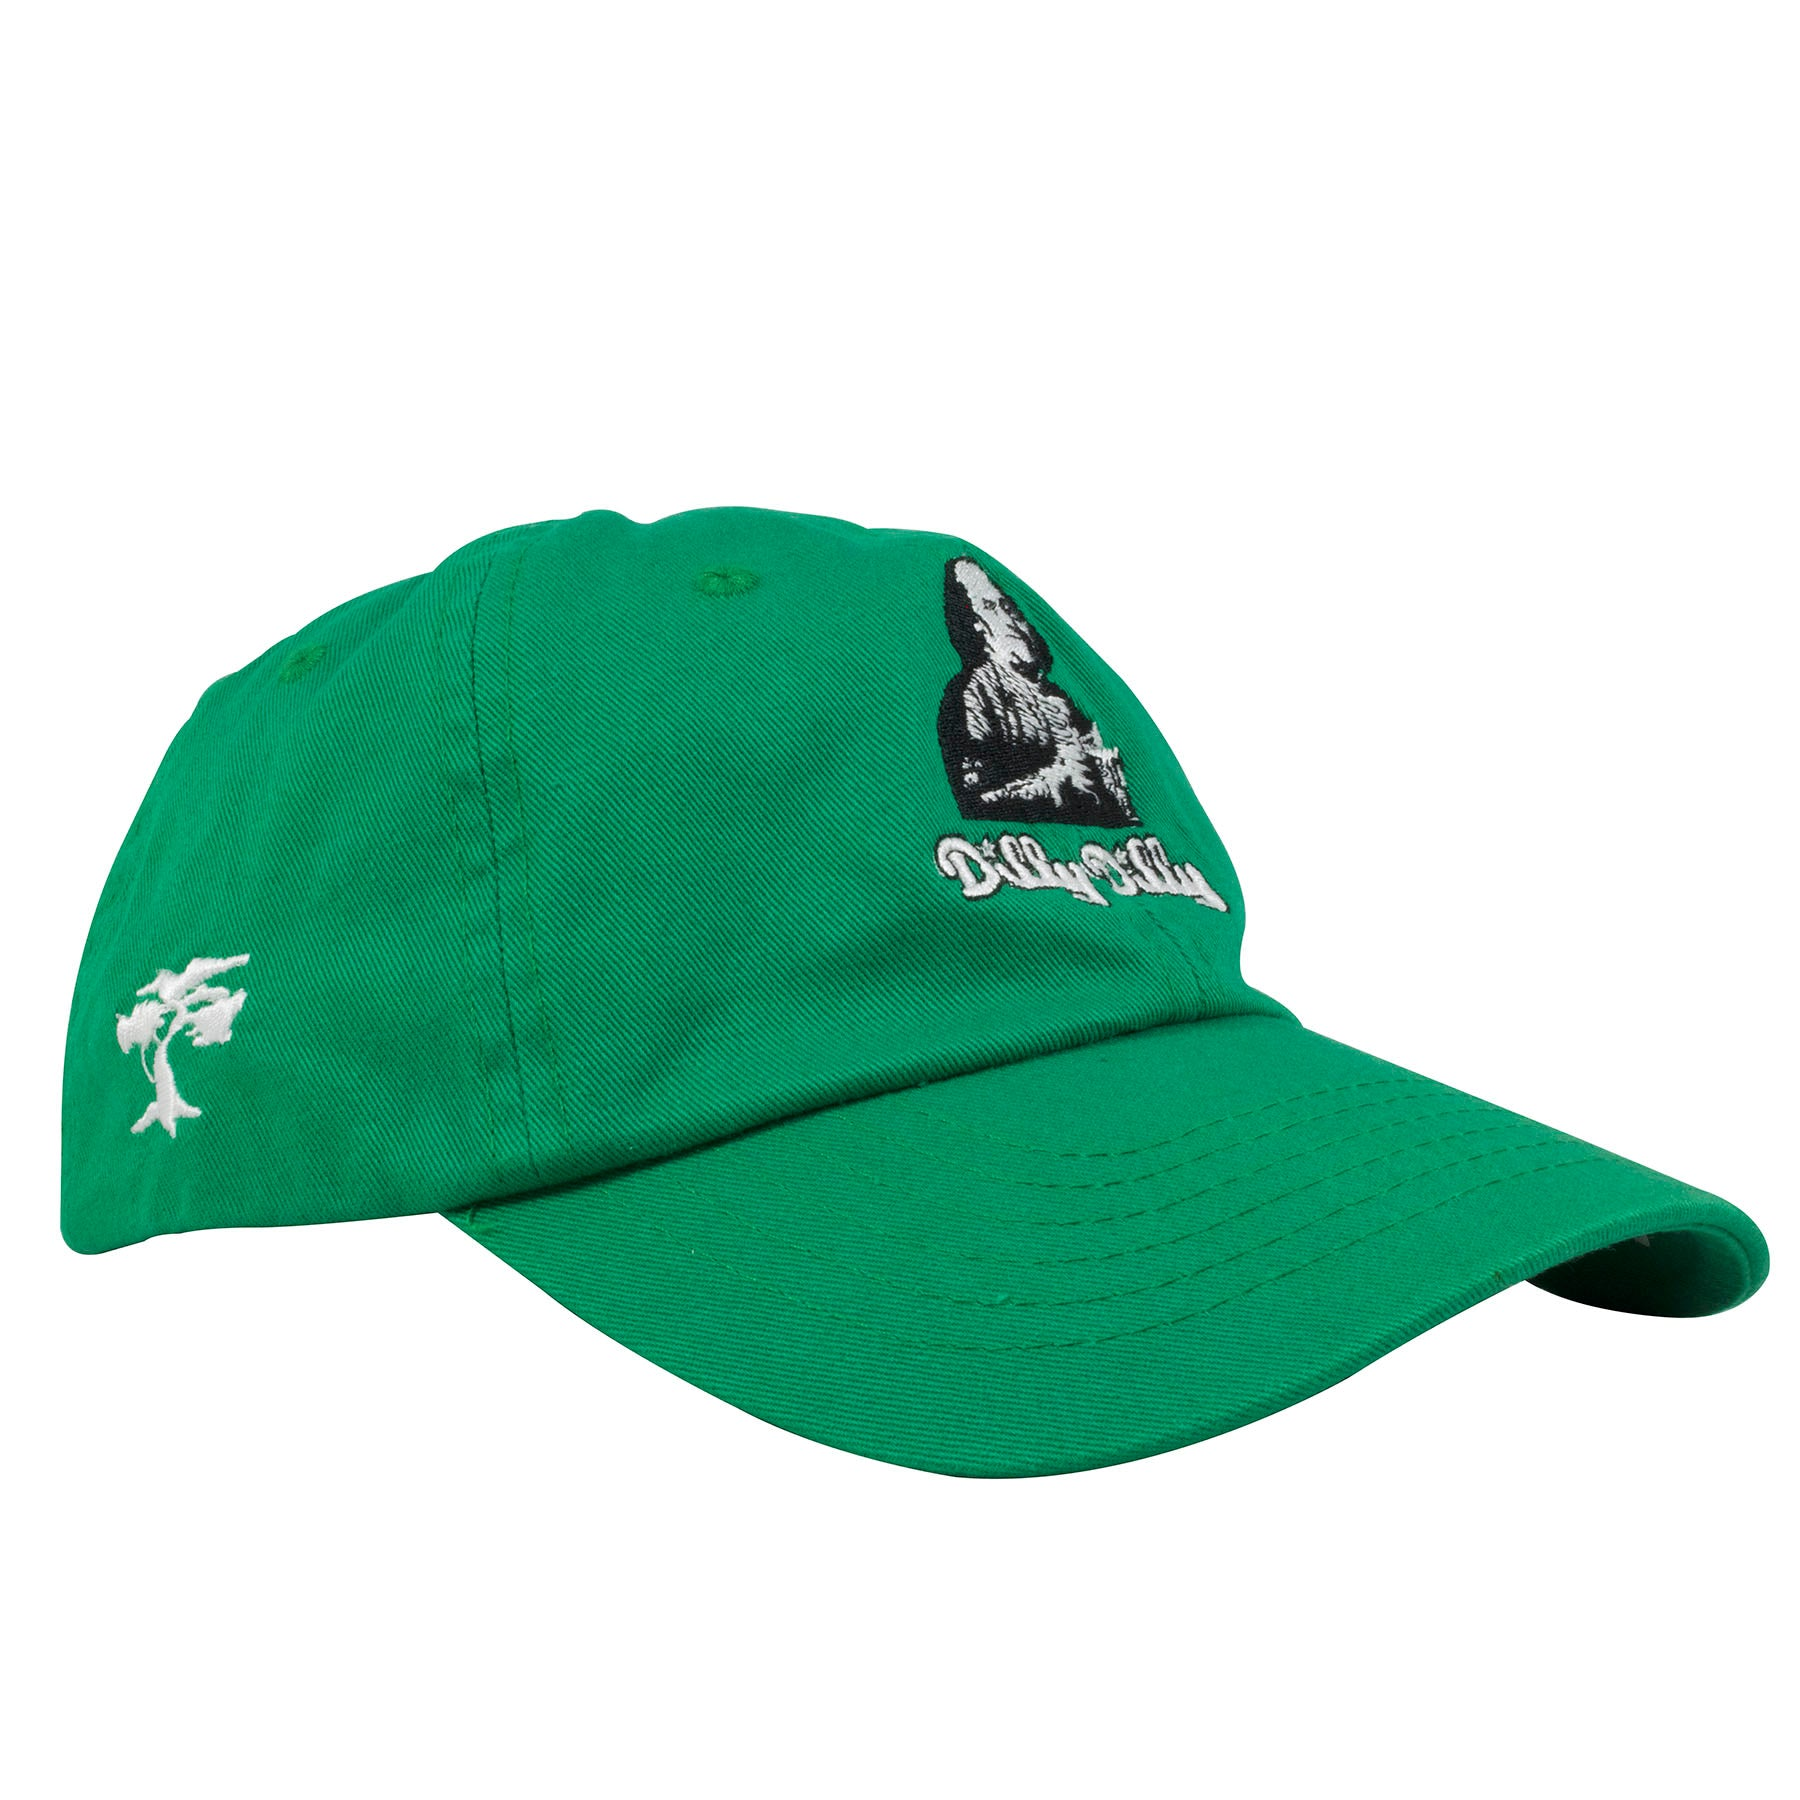 3b38b302e1b Embroidered on the front of the Benjamin Franklin Dilly Dilly kelly green  adjustable dad hat is · on the right side of the Benjamin Franklin Dilly  Dilly dad ...